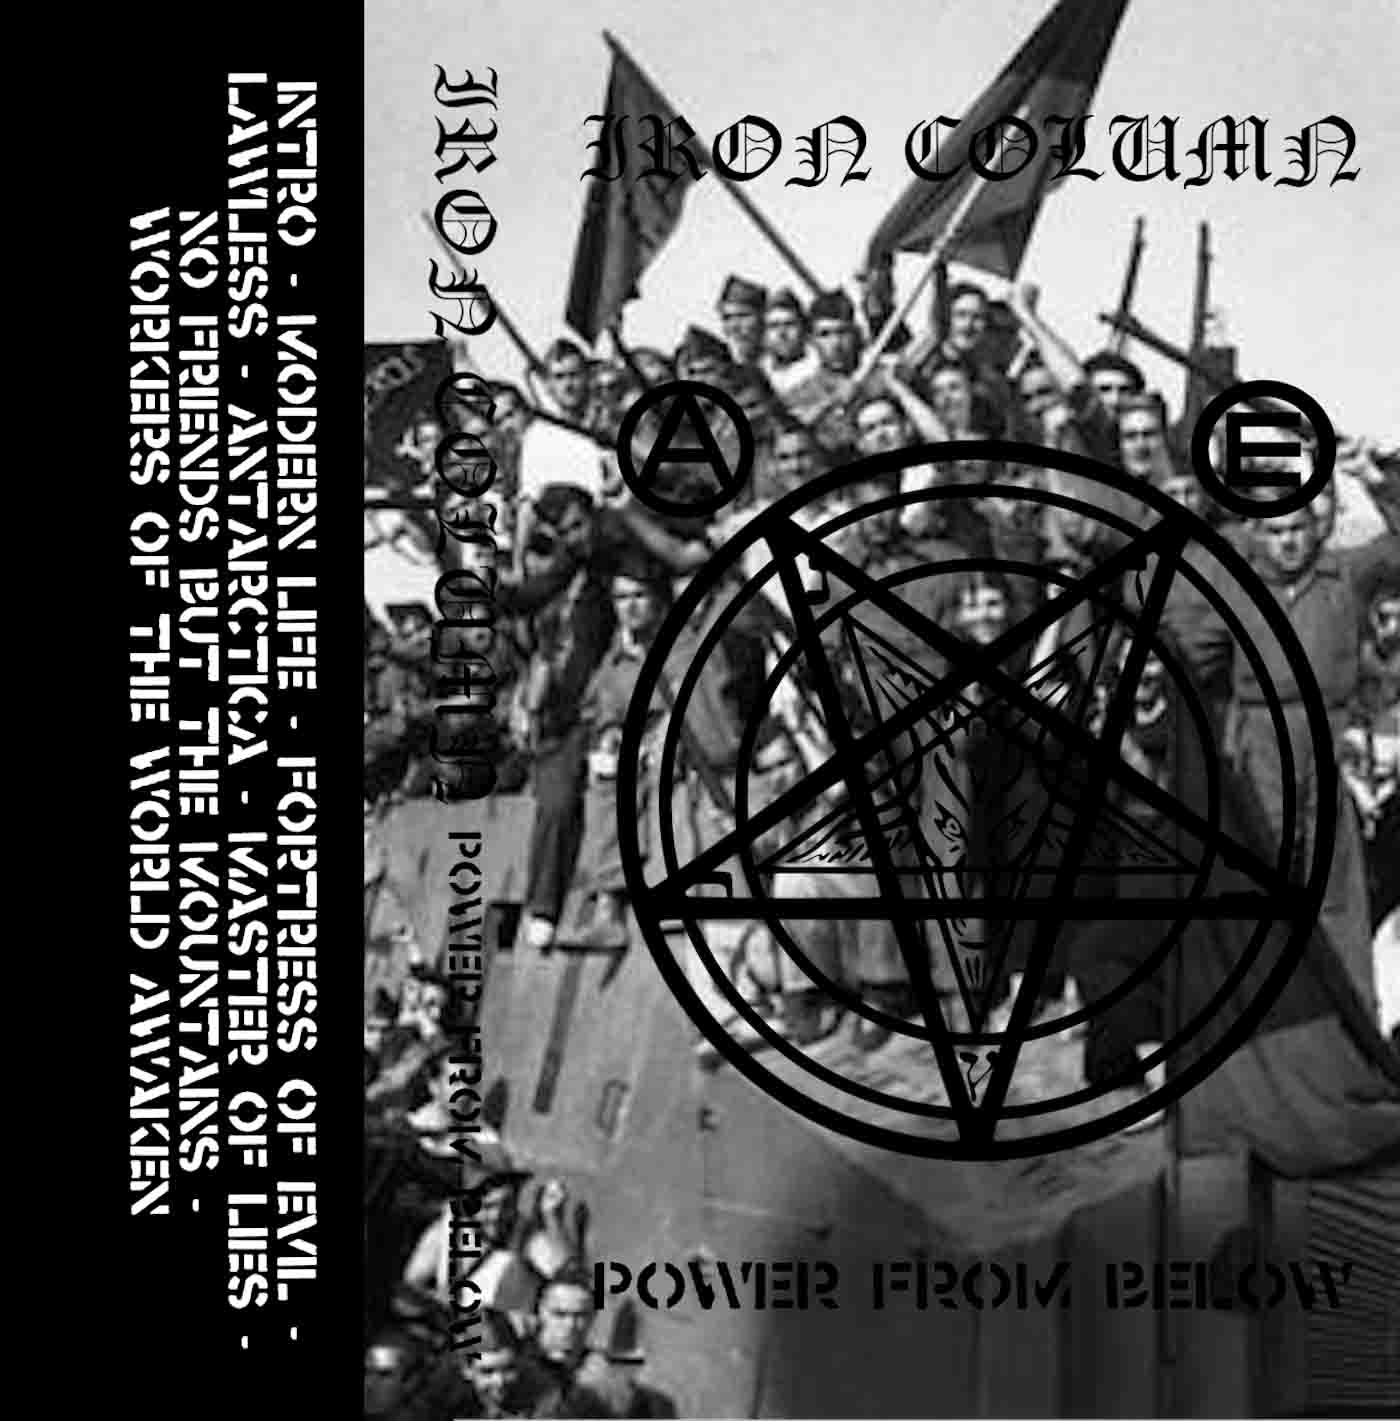 Iron Column - Power From Below